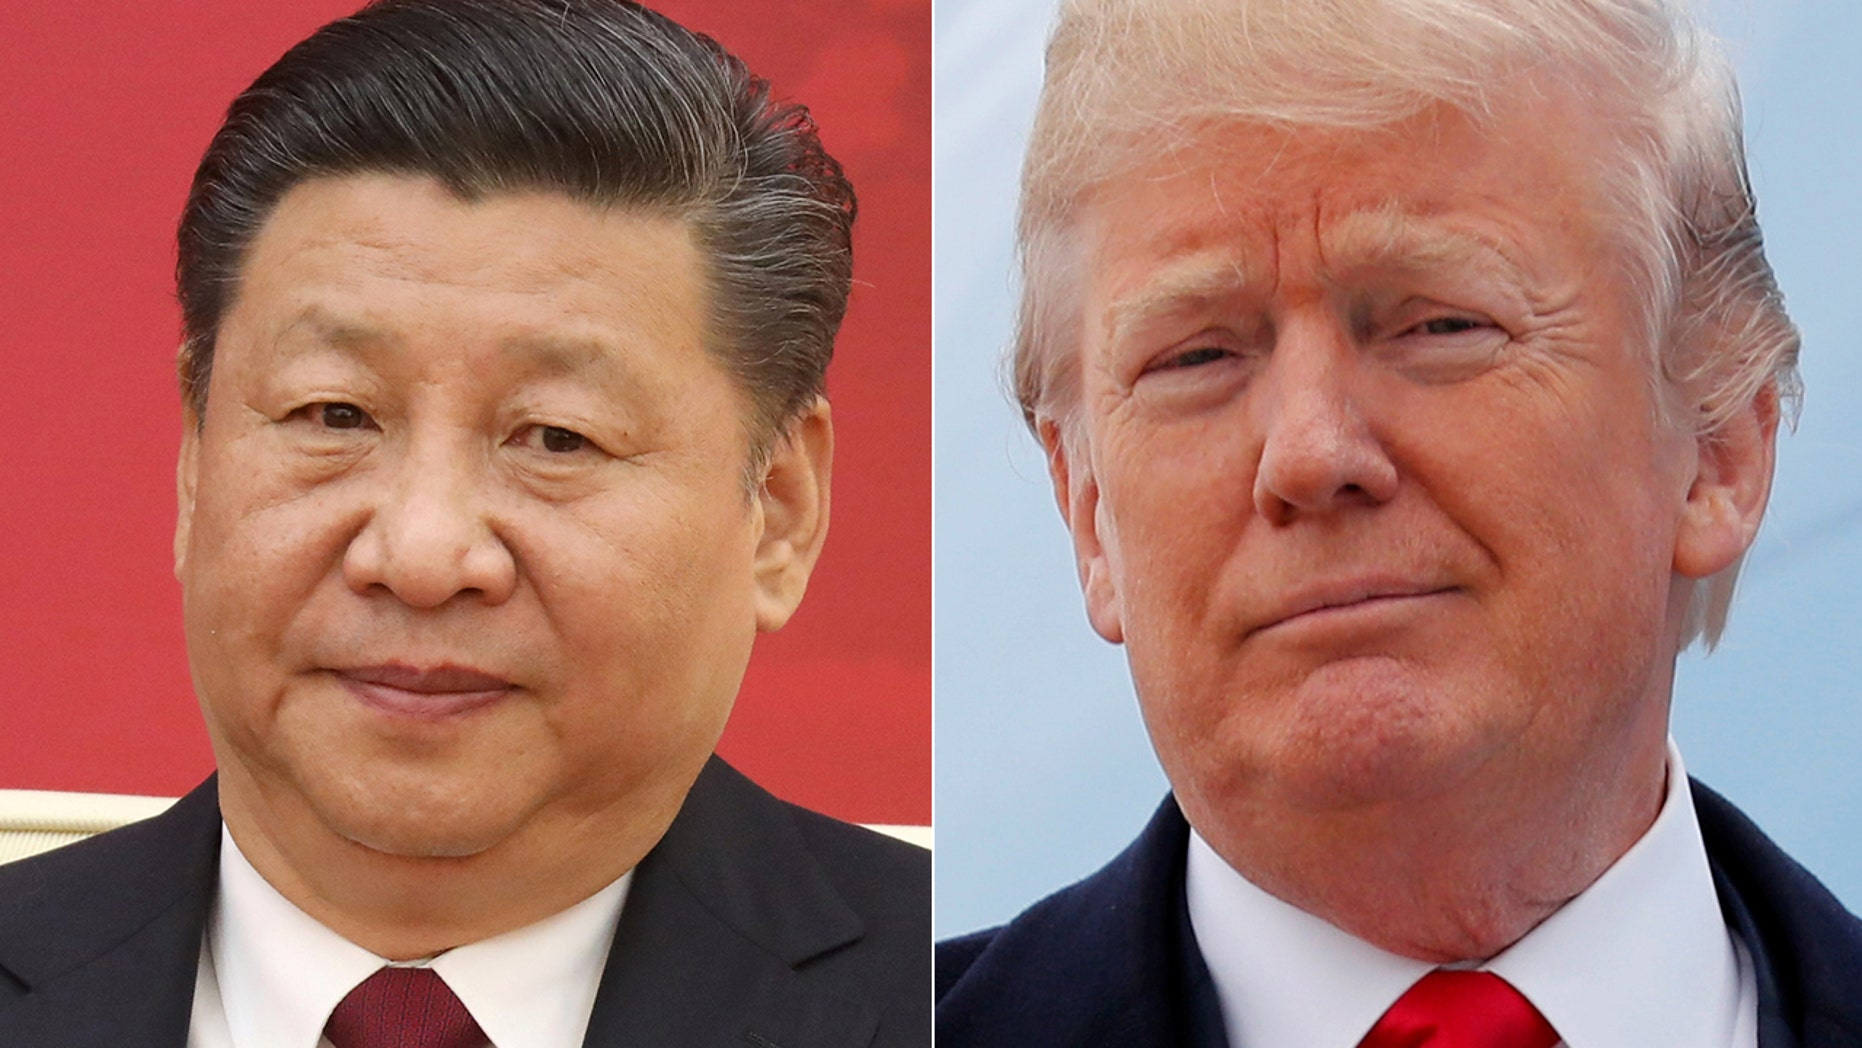 Chinese President Xi Jinping took a veiled shot at President Donald Trump on Tuesday during his nationalistic address to parliament regarding Taiwan.